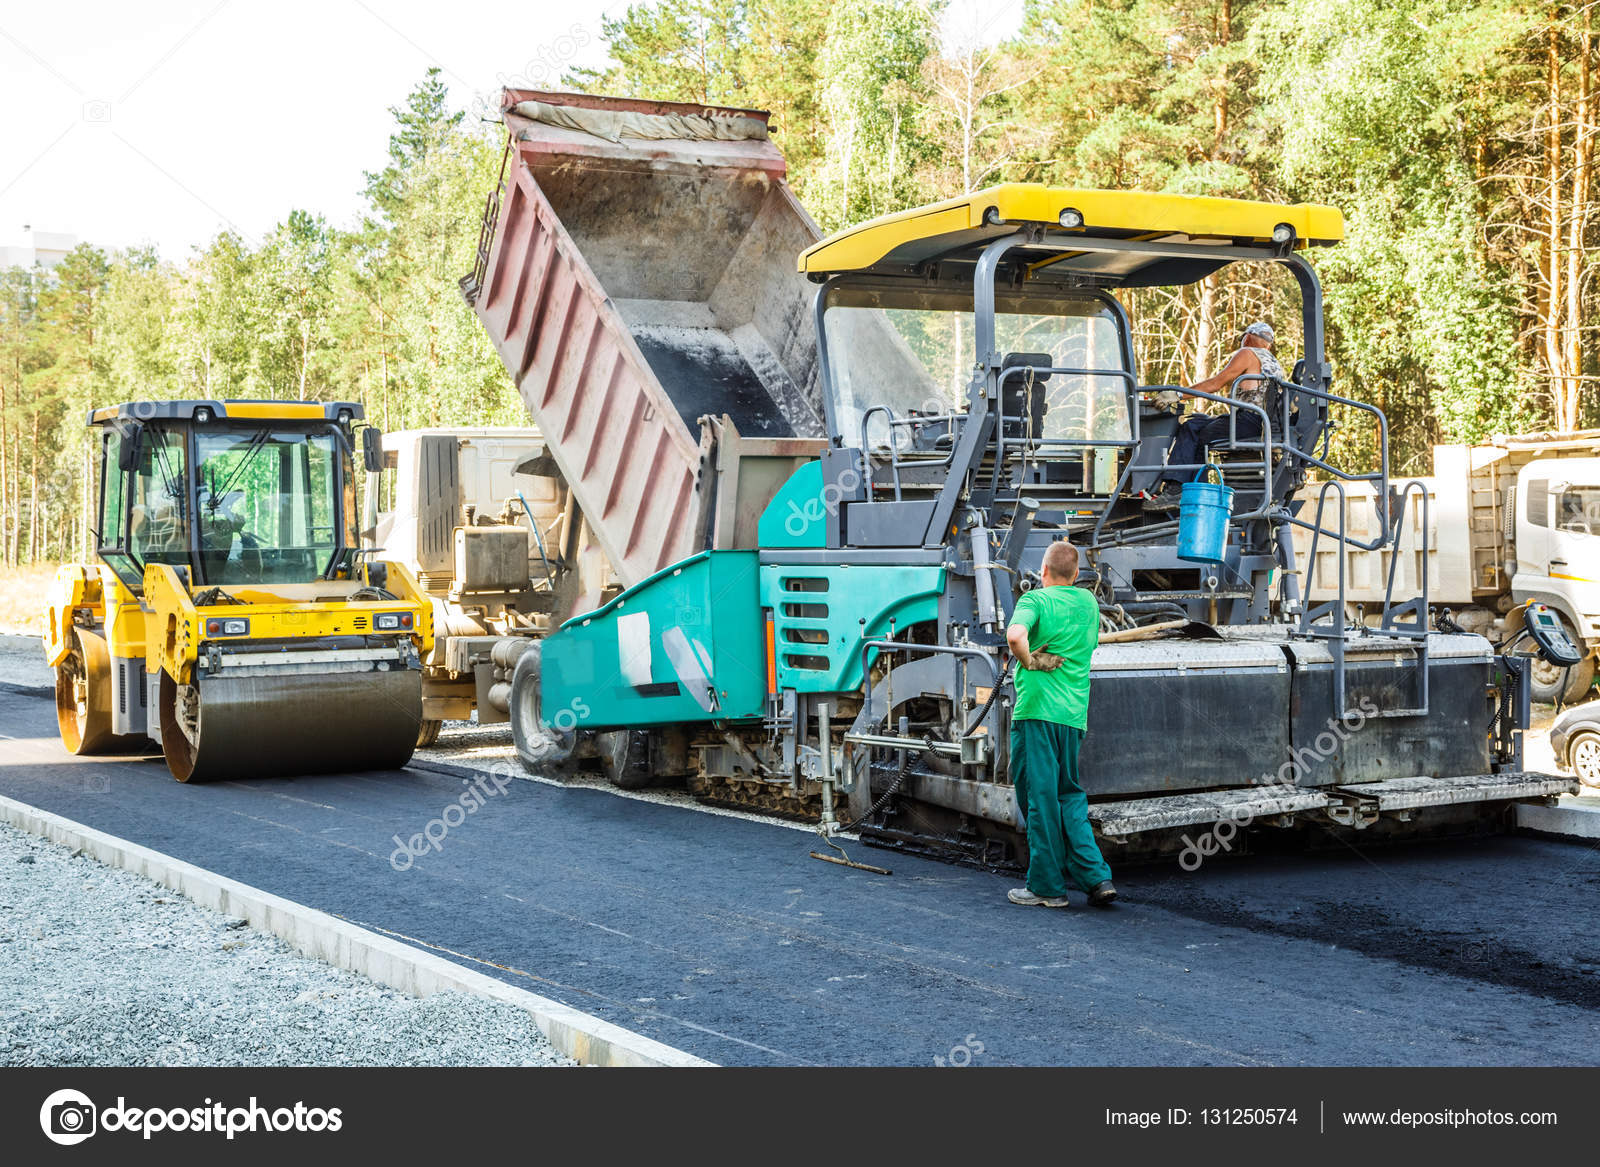 asphalt placing machine working on the city road photo by garsya